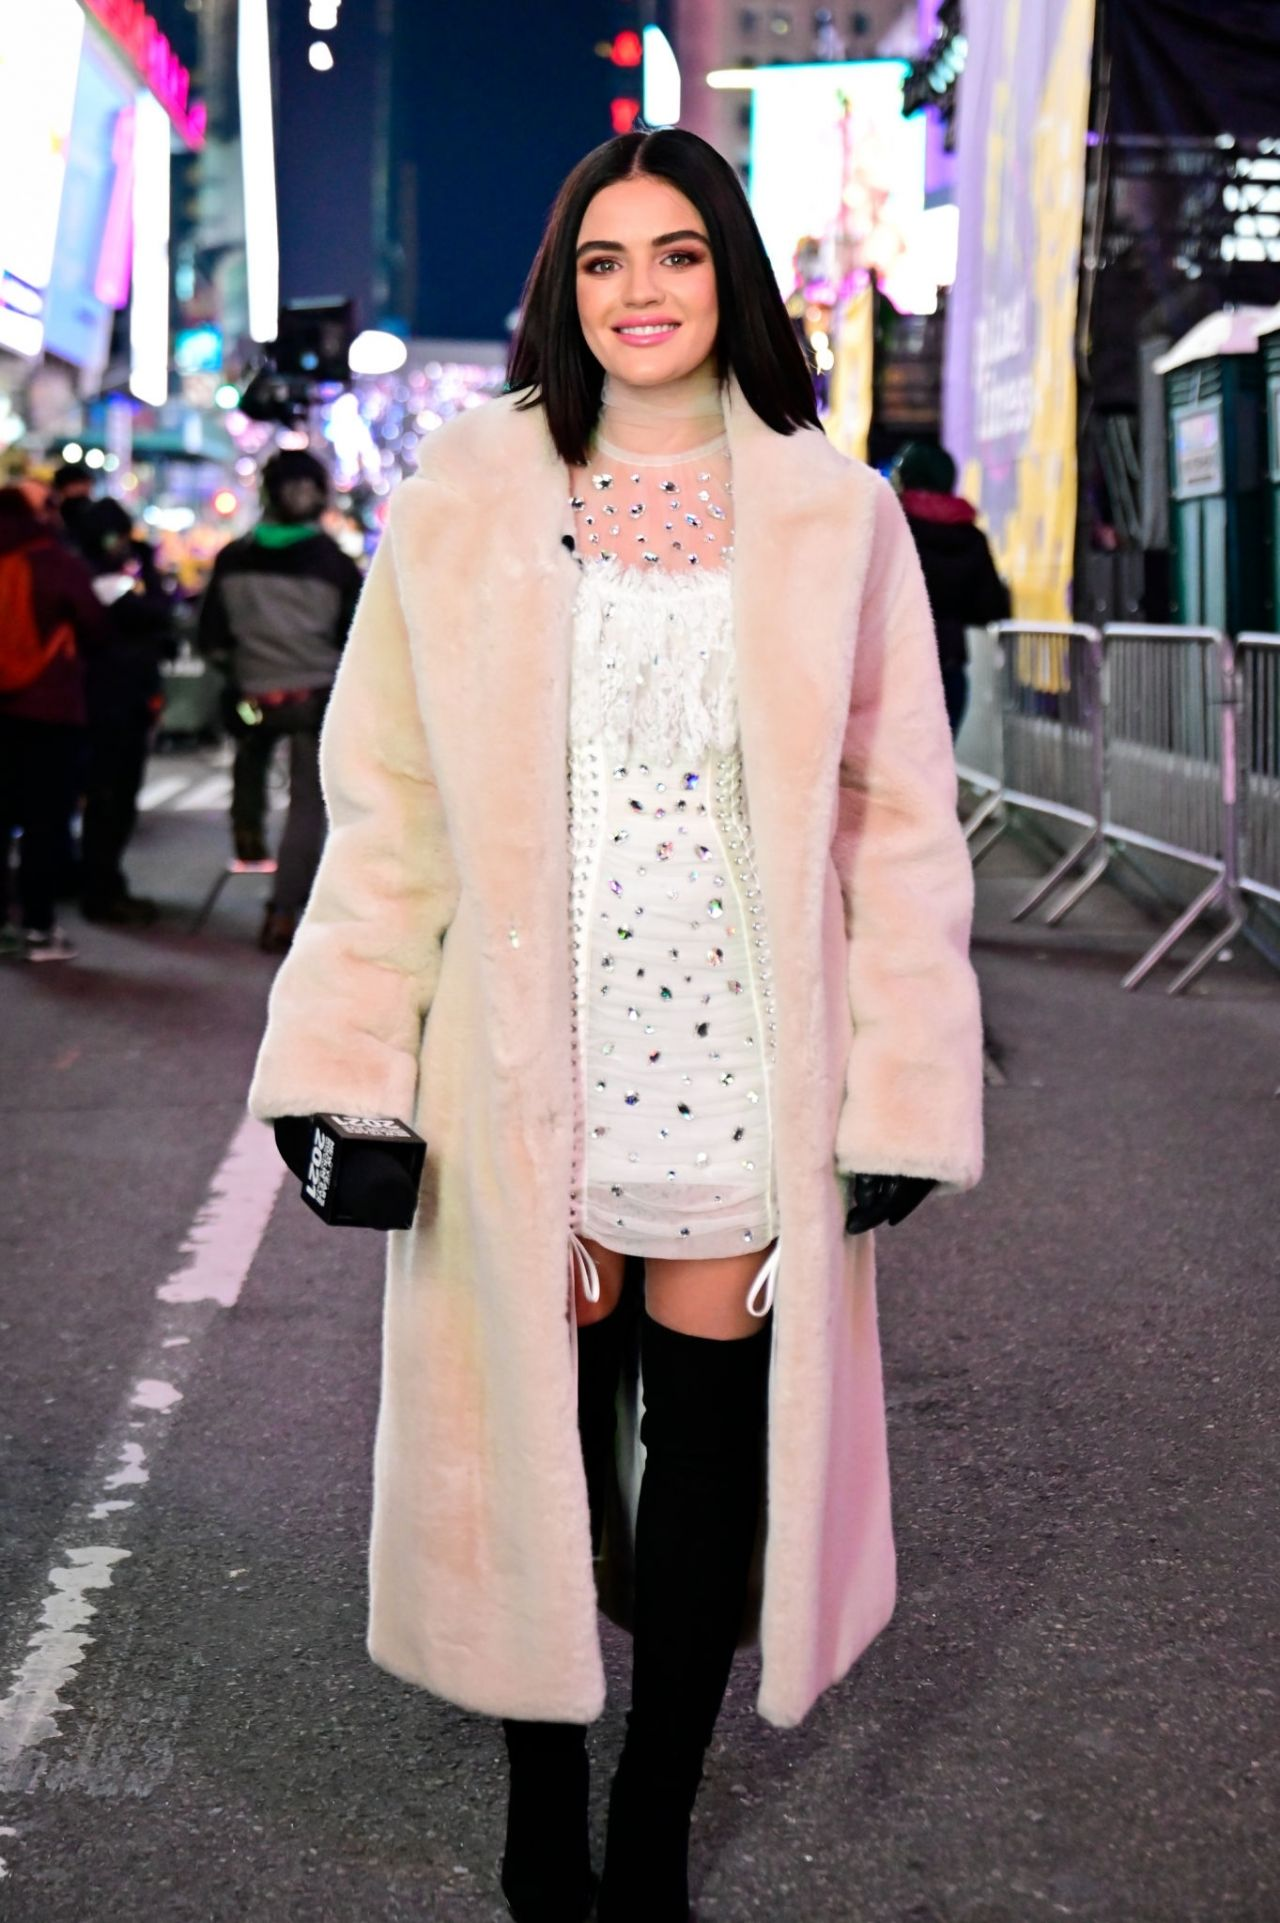 lucy-hale-hosting-dick-clarks-new-years-rocking-eve-in-times-square-12-31-2020